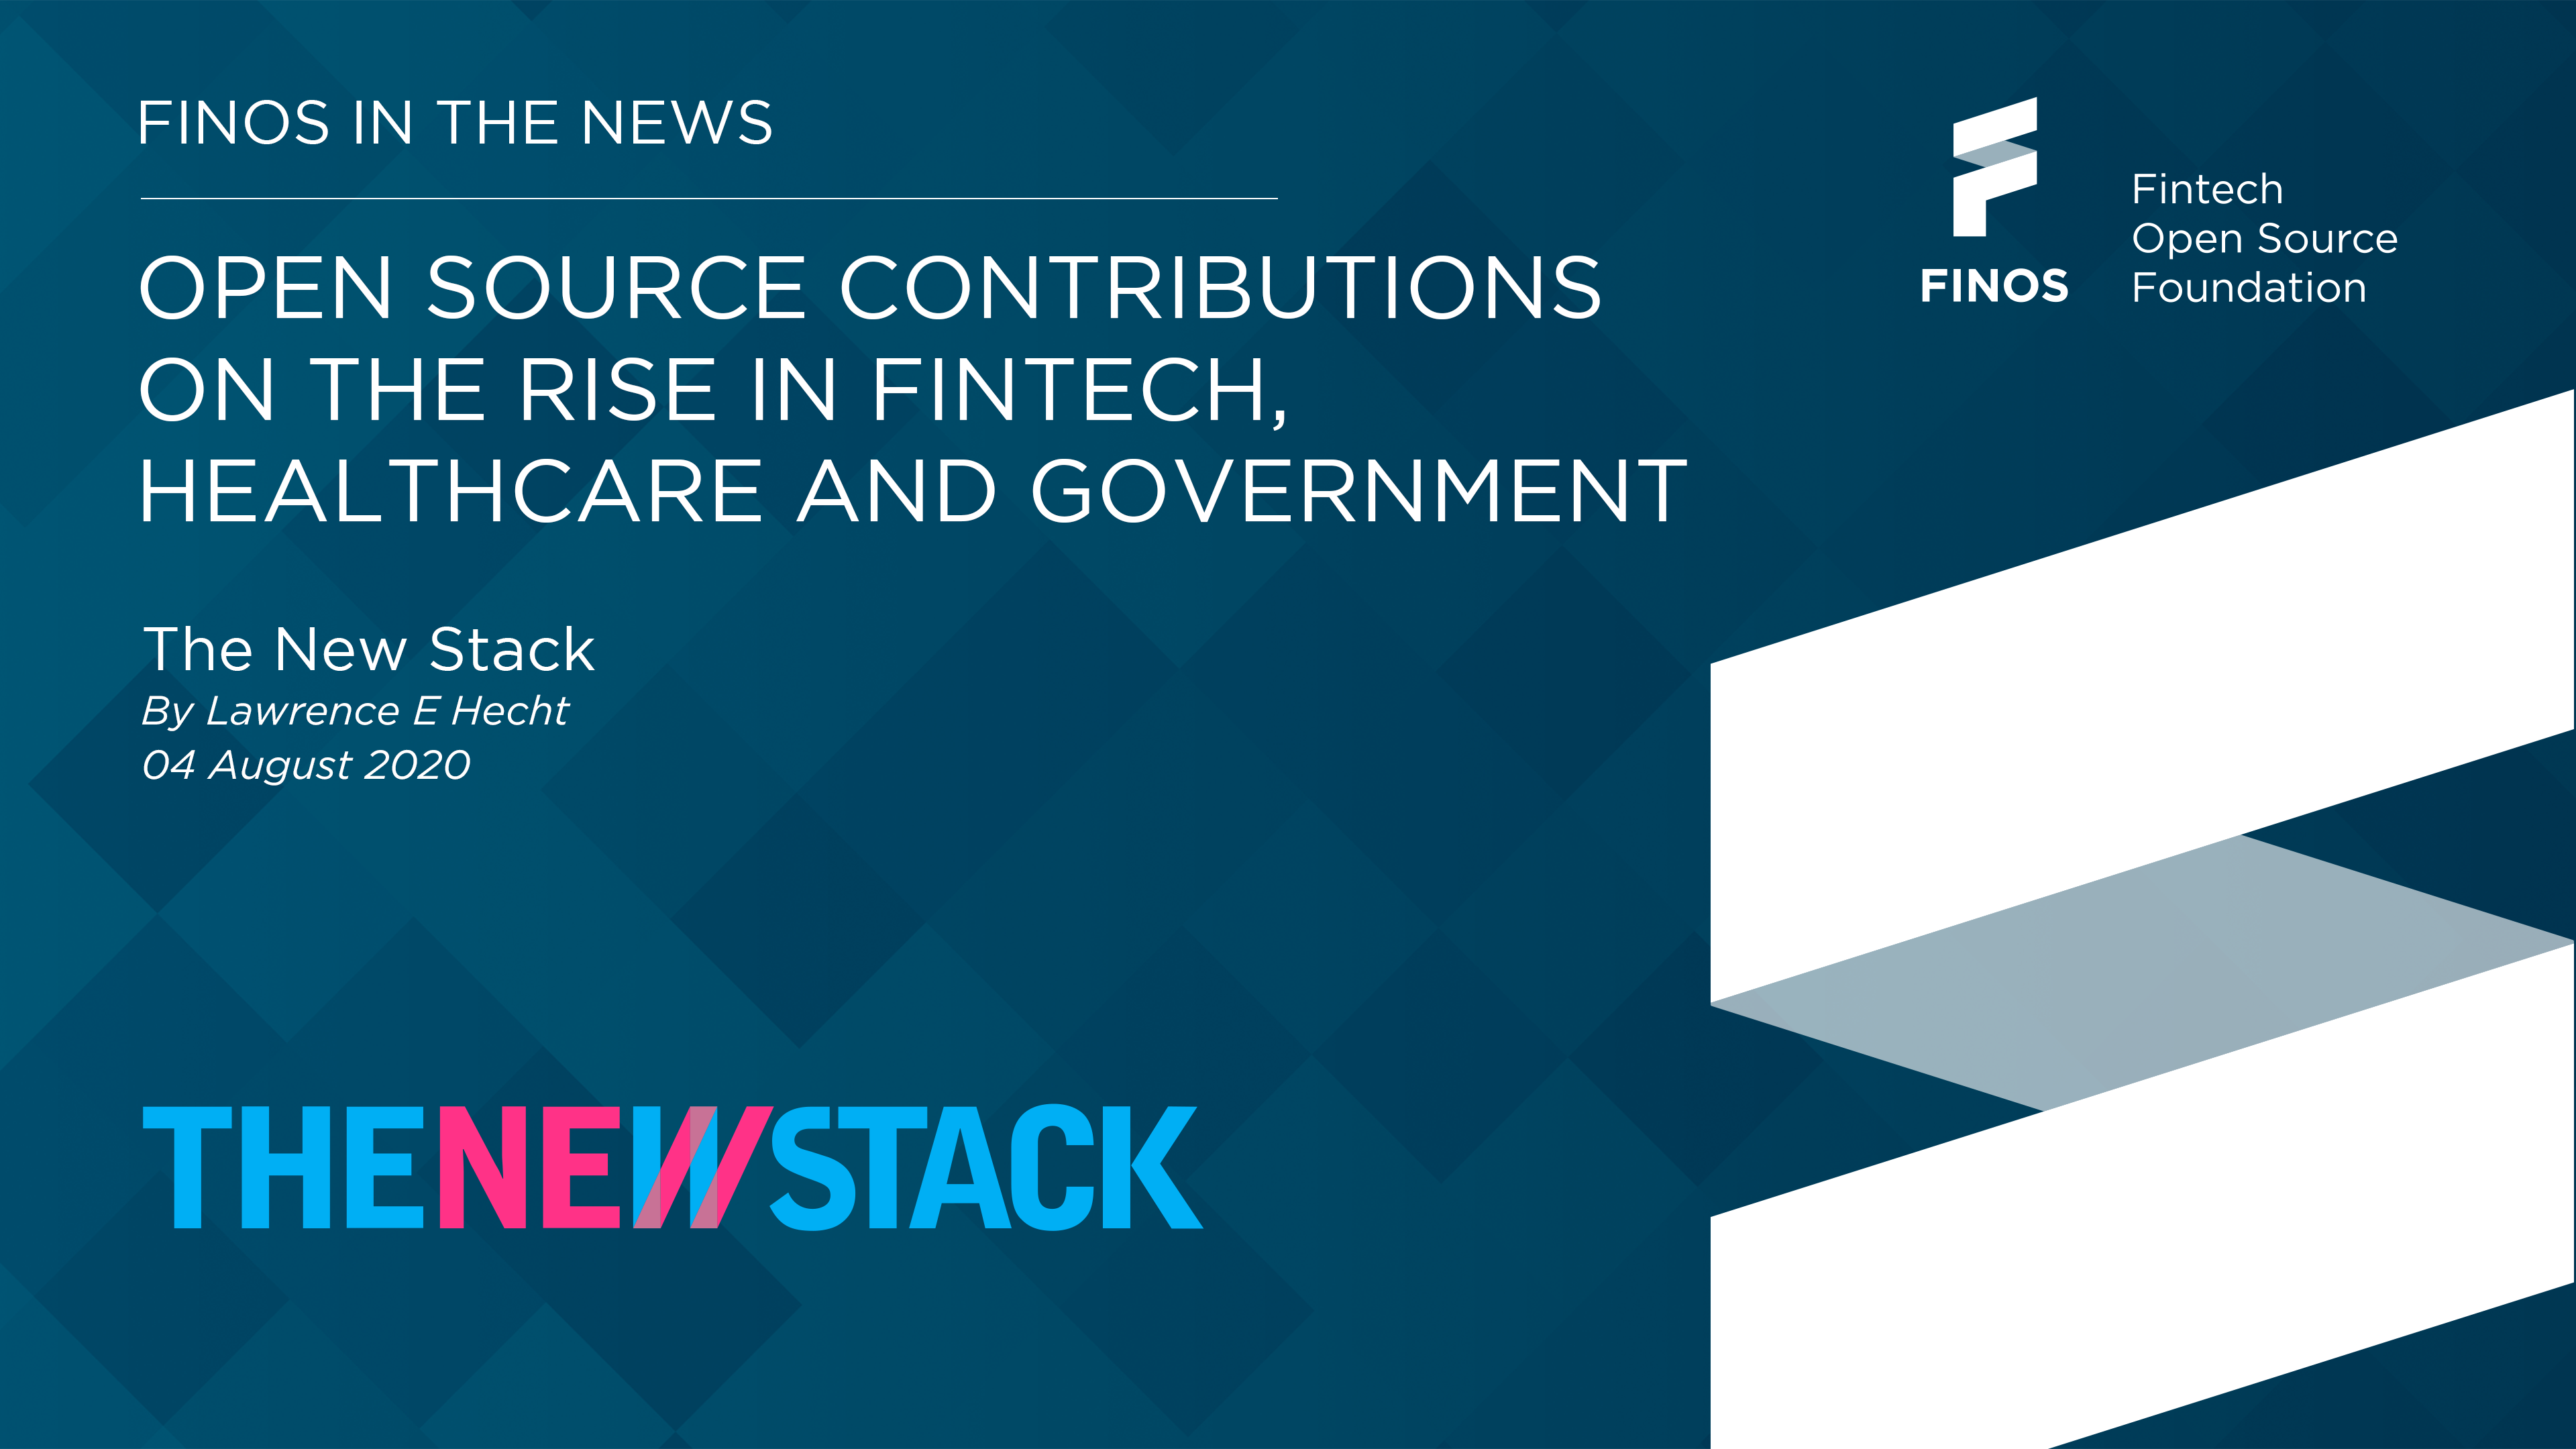 FINOS-in-the-news-new-stack-4-aug-20